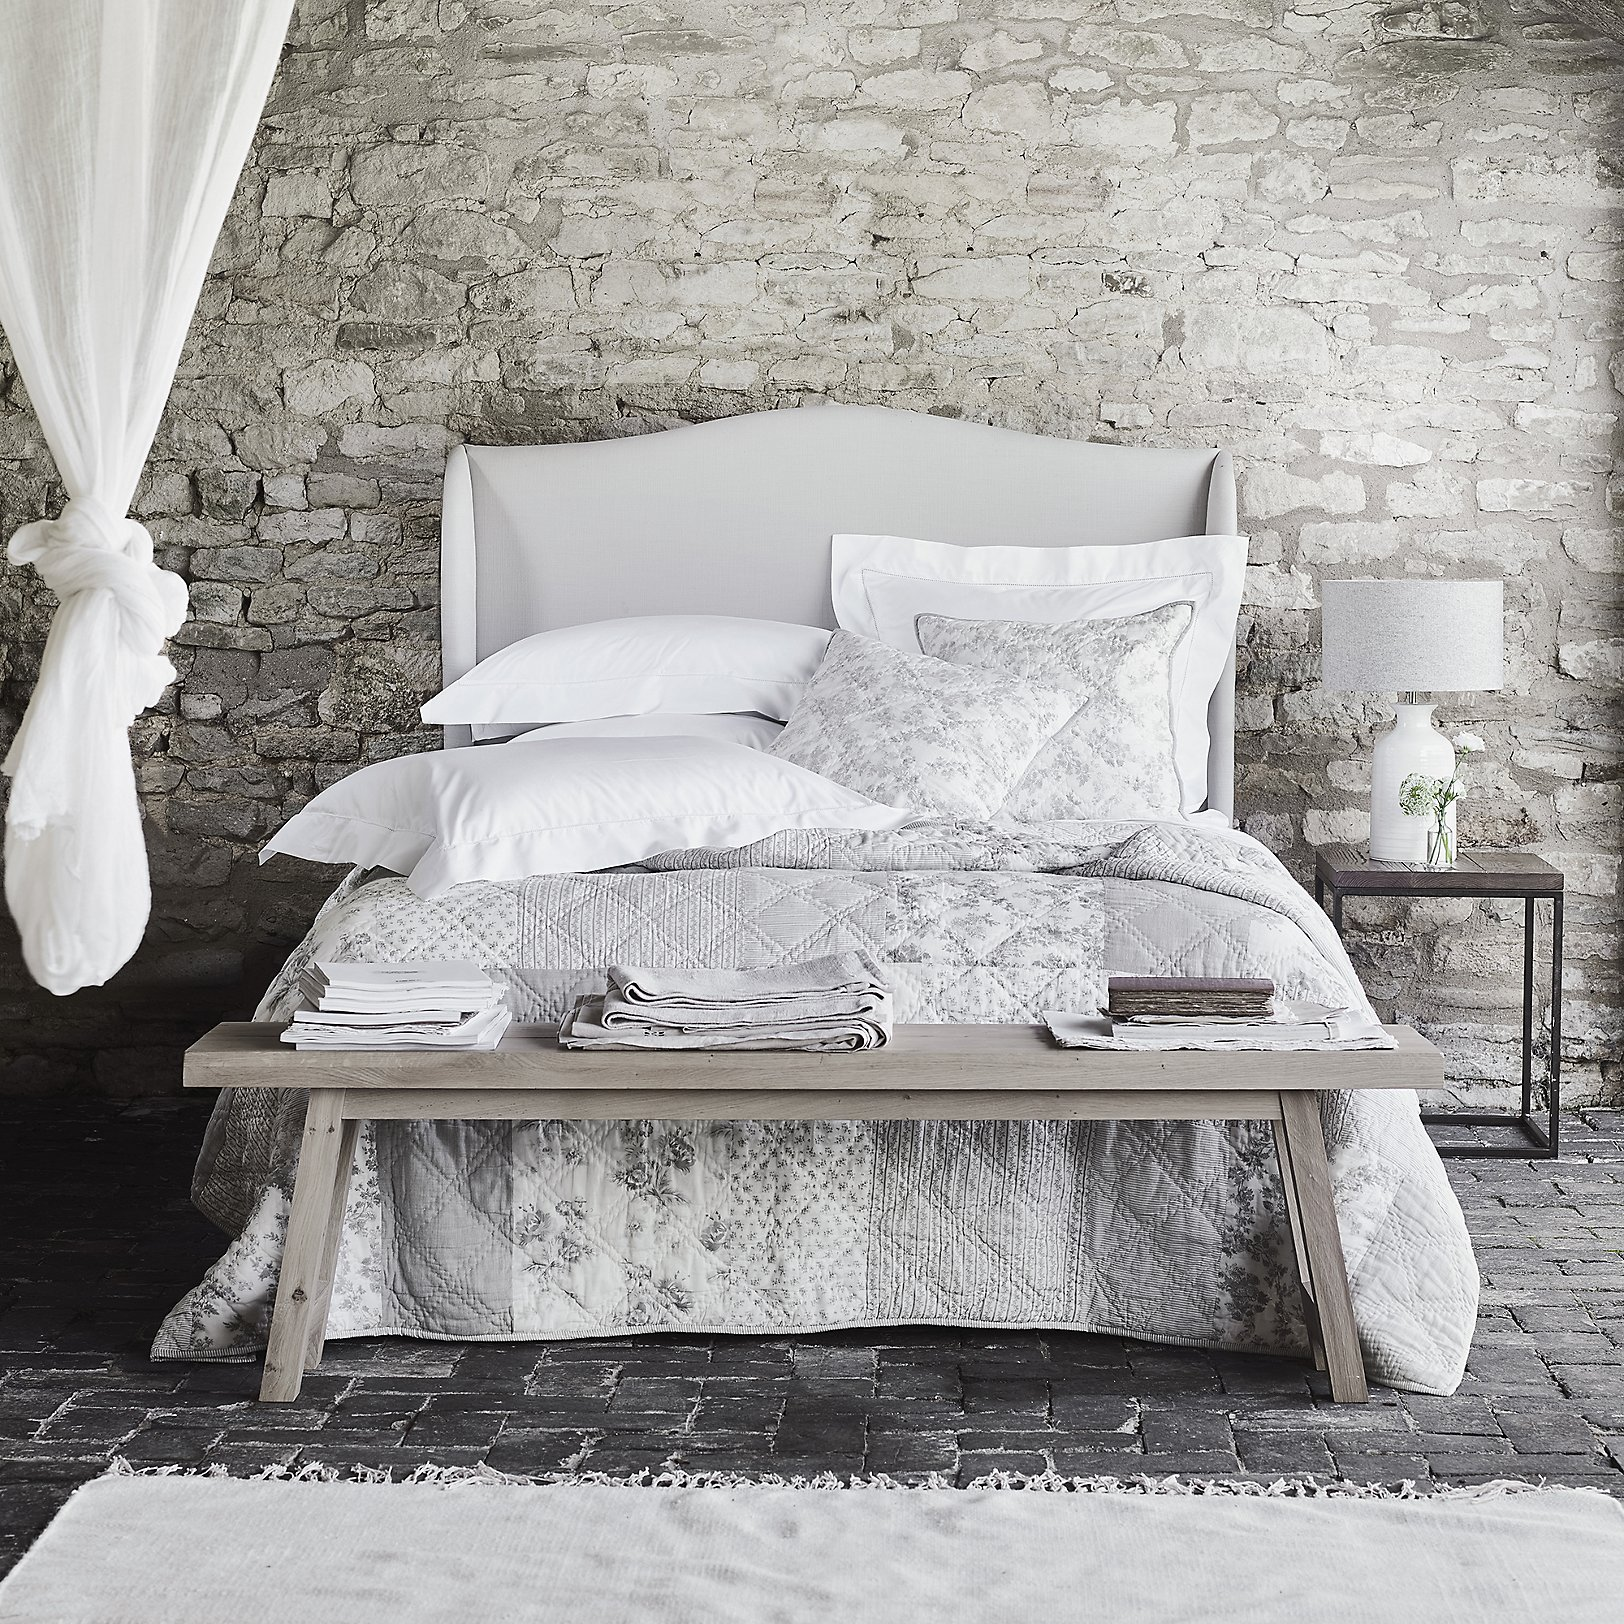 Burford Quilt Cushion Covers Bed Cushions Bedspreads Throws The White Company Uk